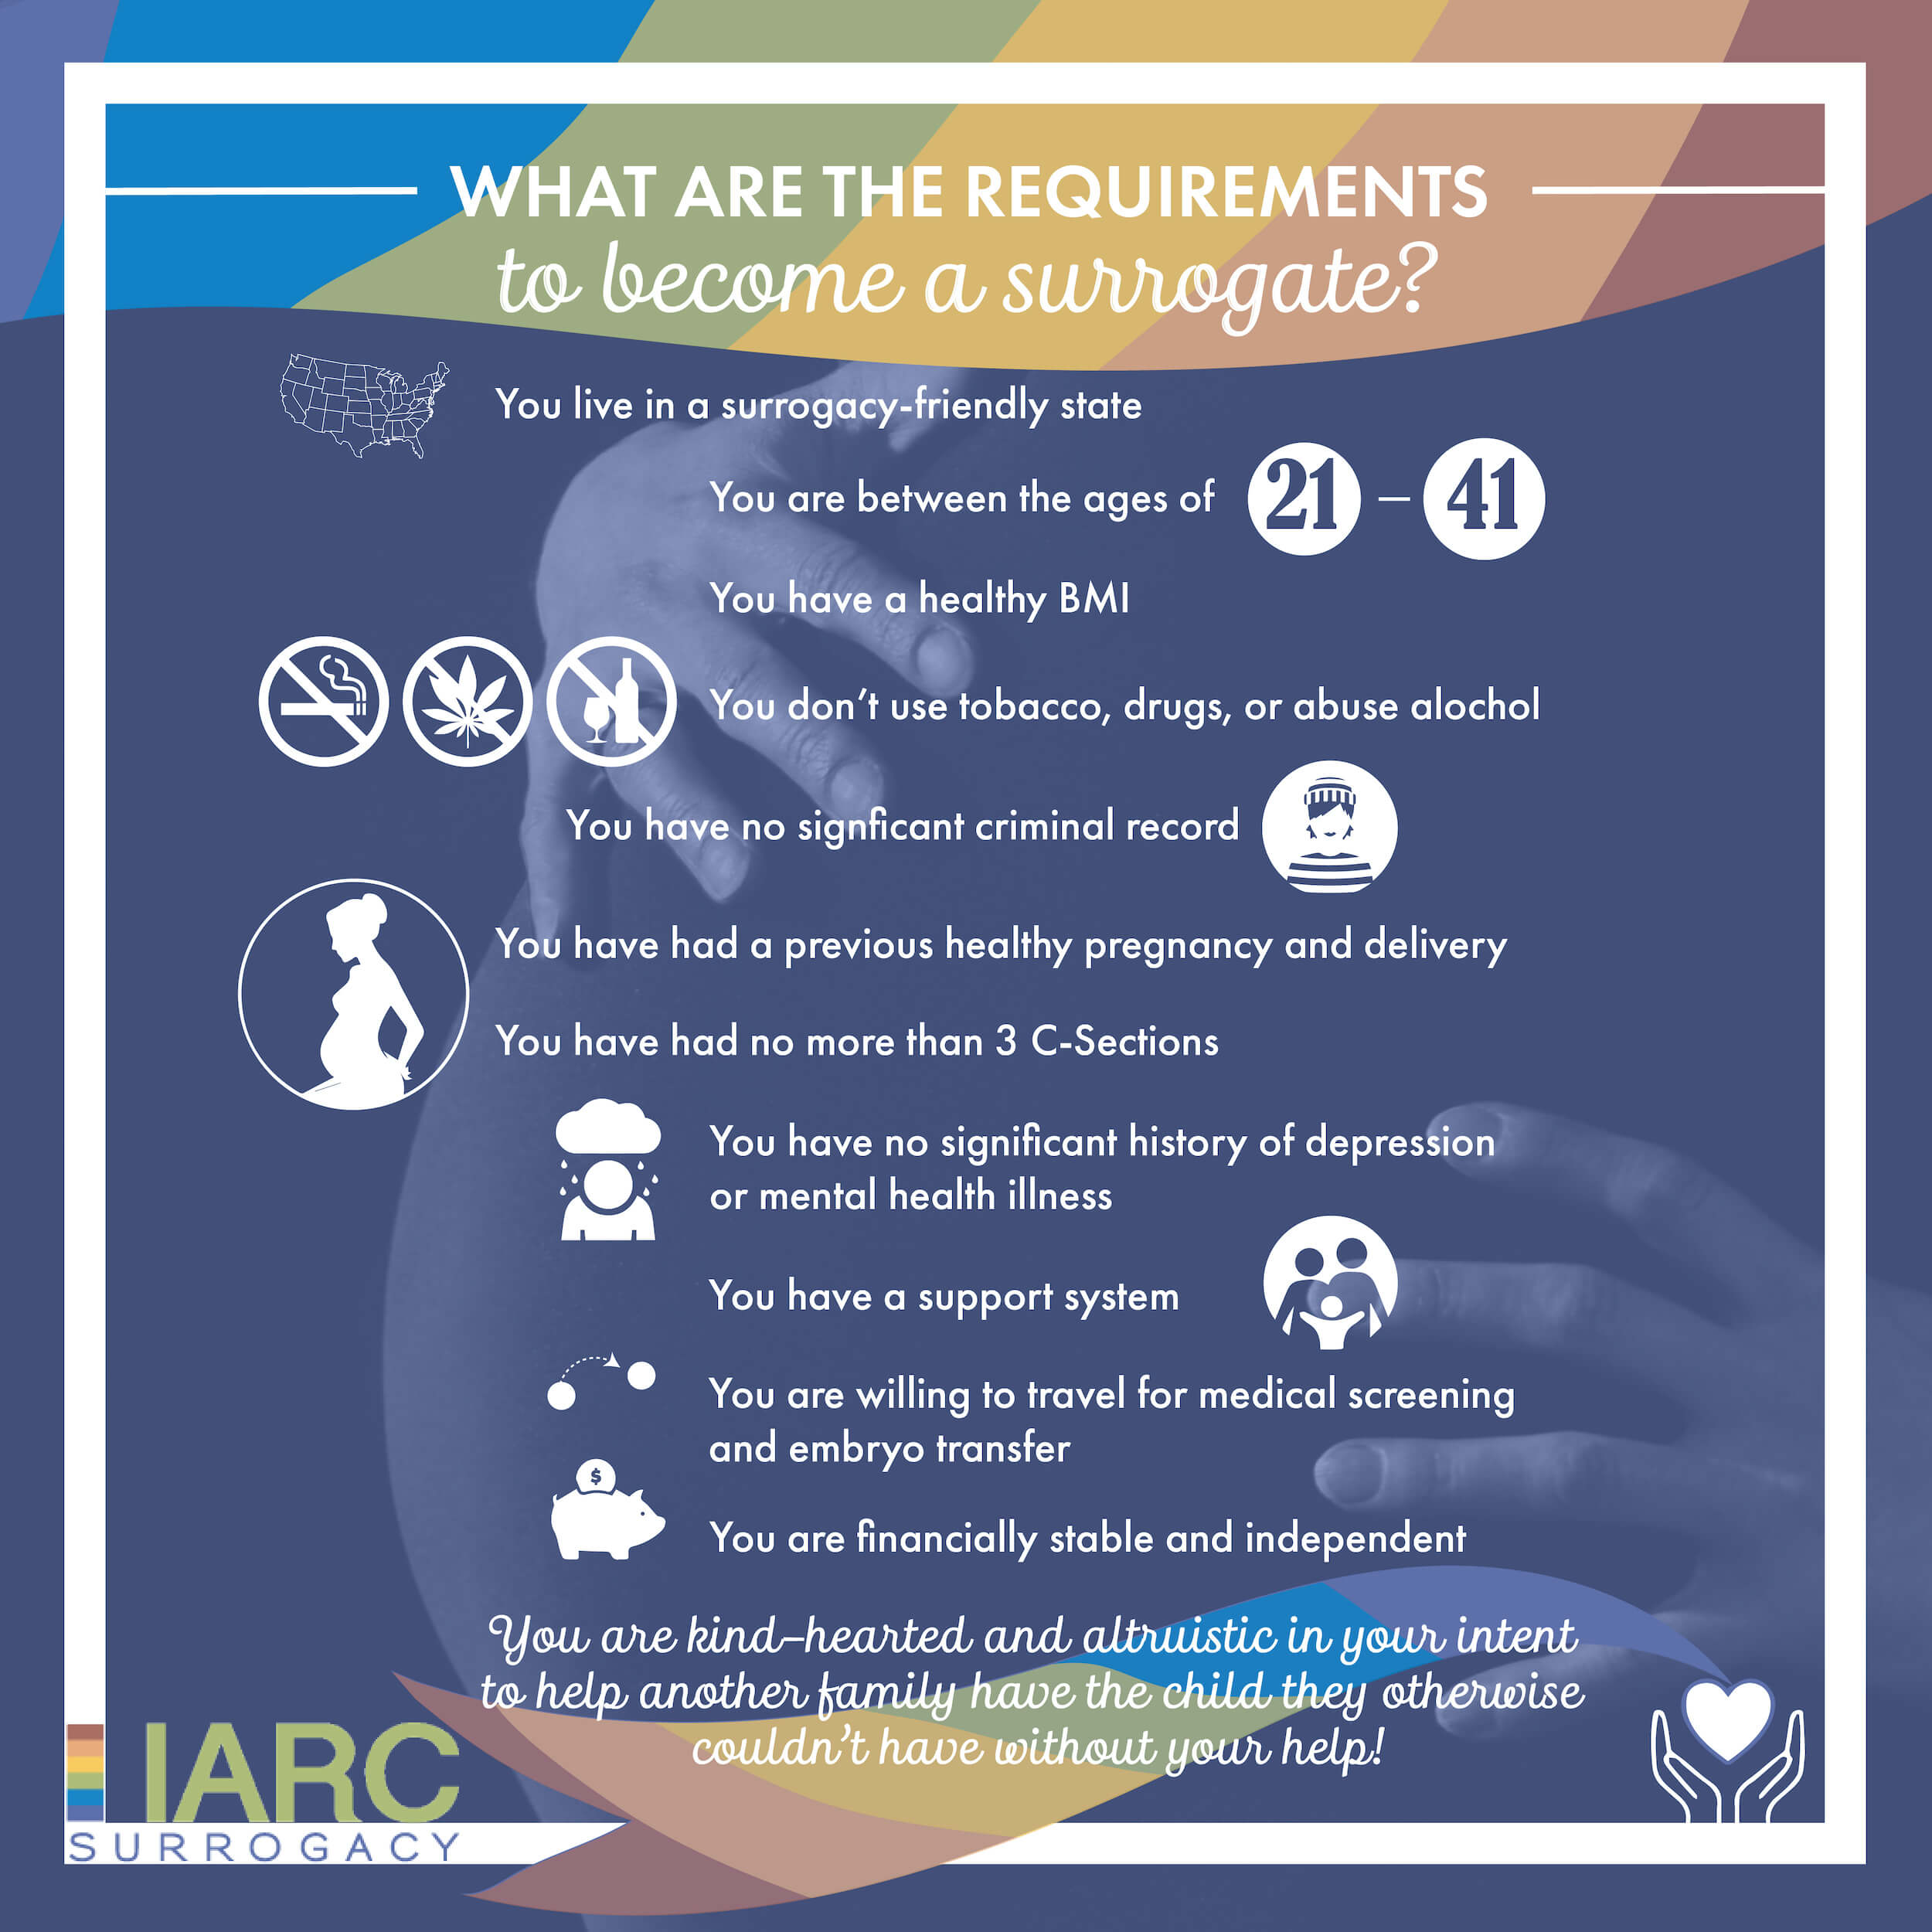 Requirements for becoming a Surrogate